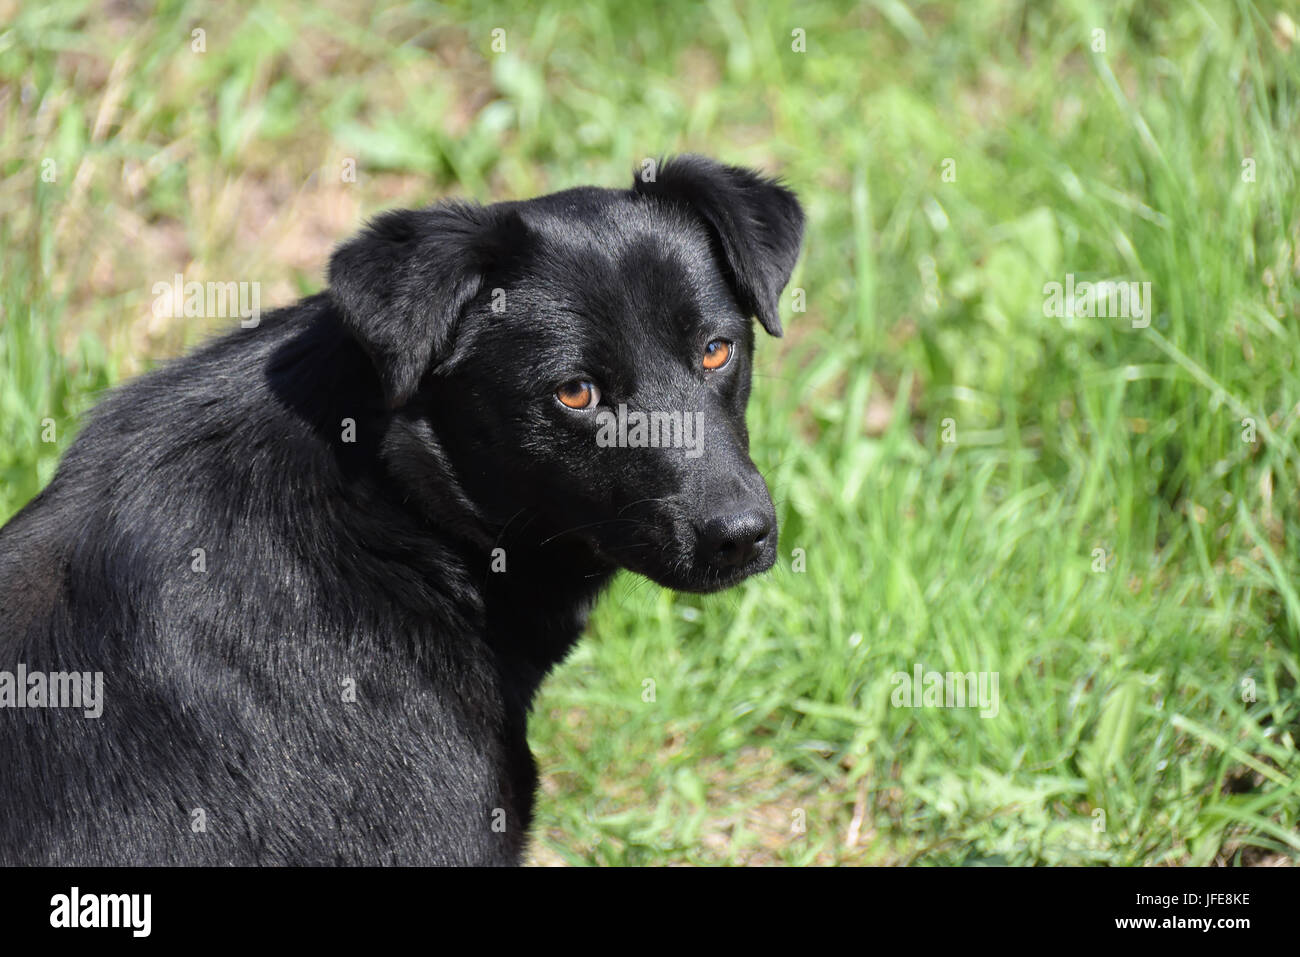 Black dog with shiny hair against green background, may use for pet calendar page - Stock Image